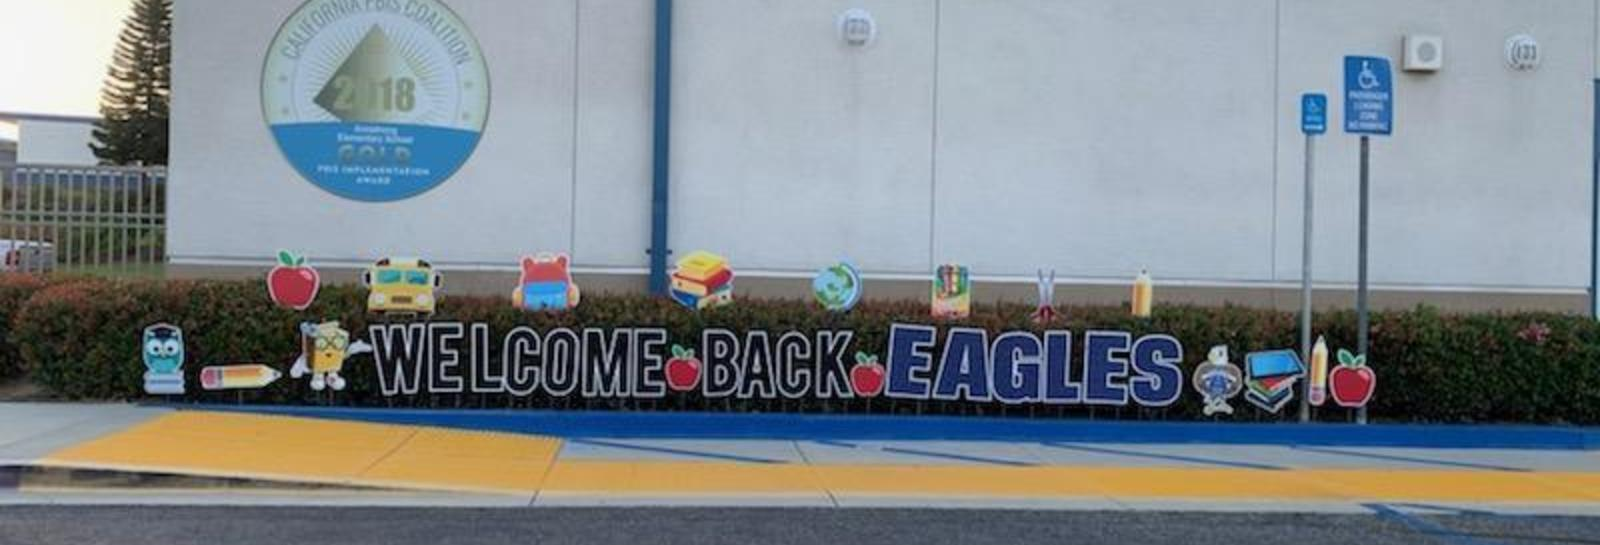 #Armstrongeagles welcomed with laughter, music, welcome back SEL goodie bags and lots of love